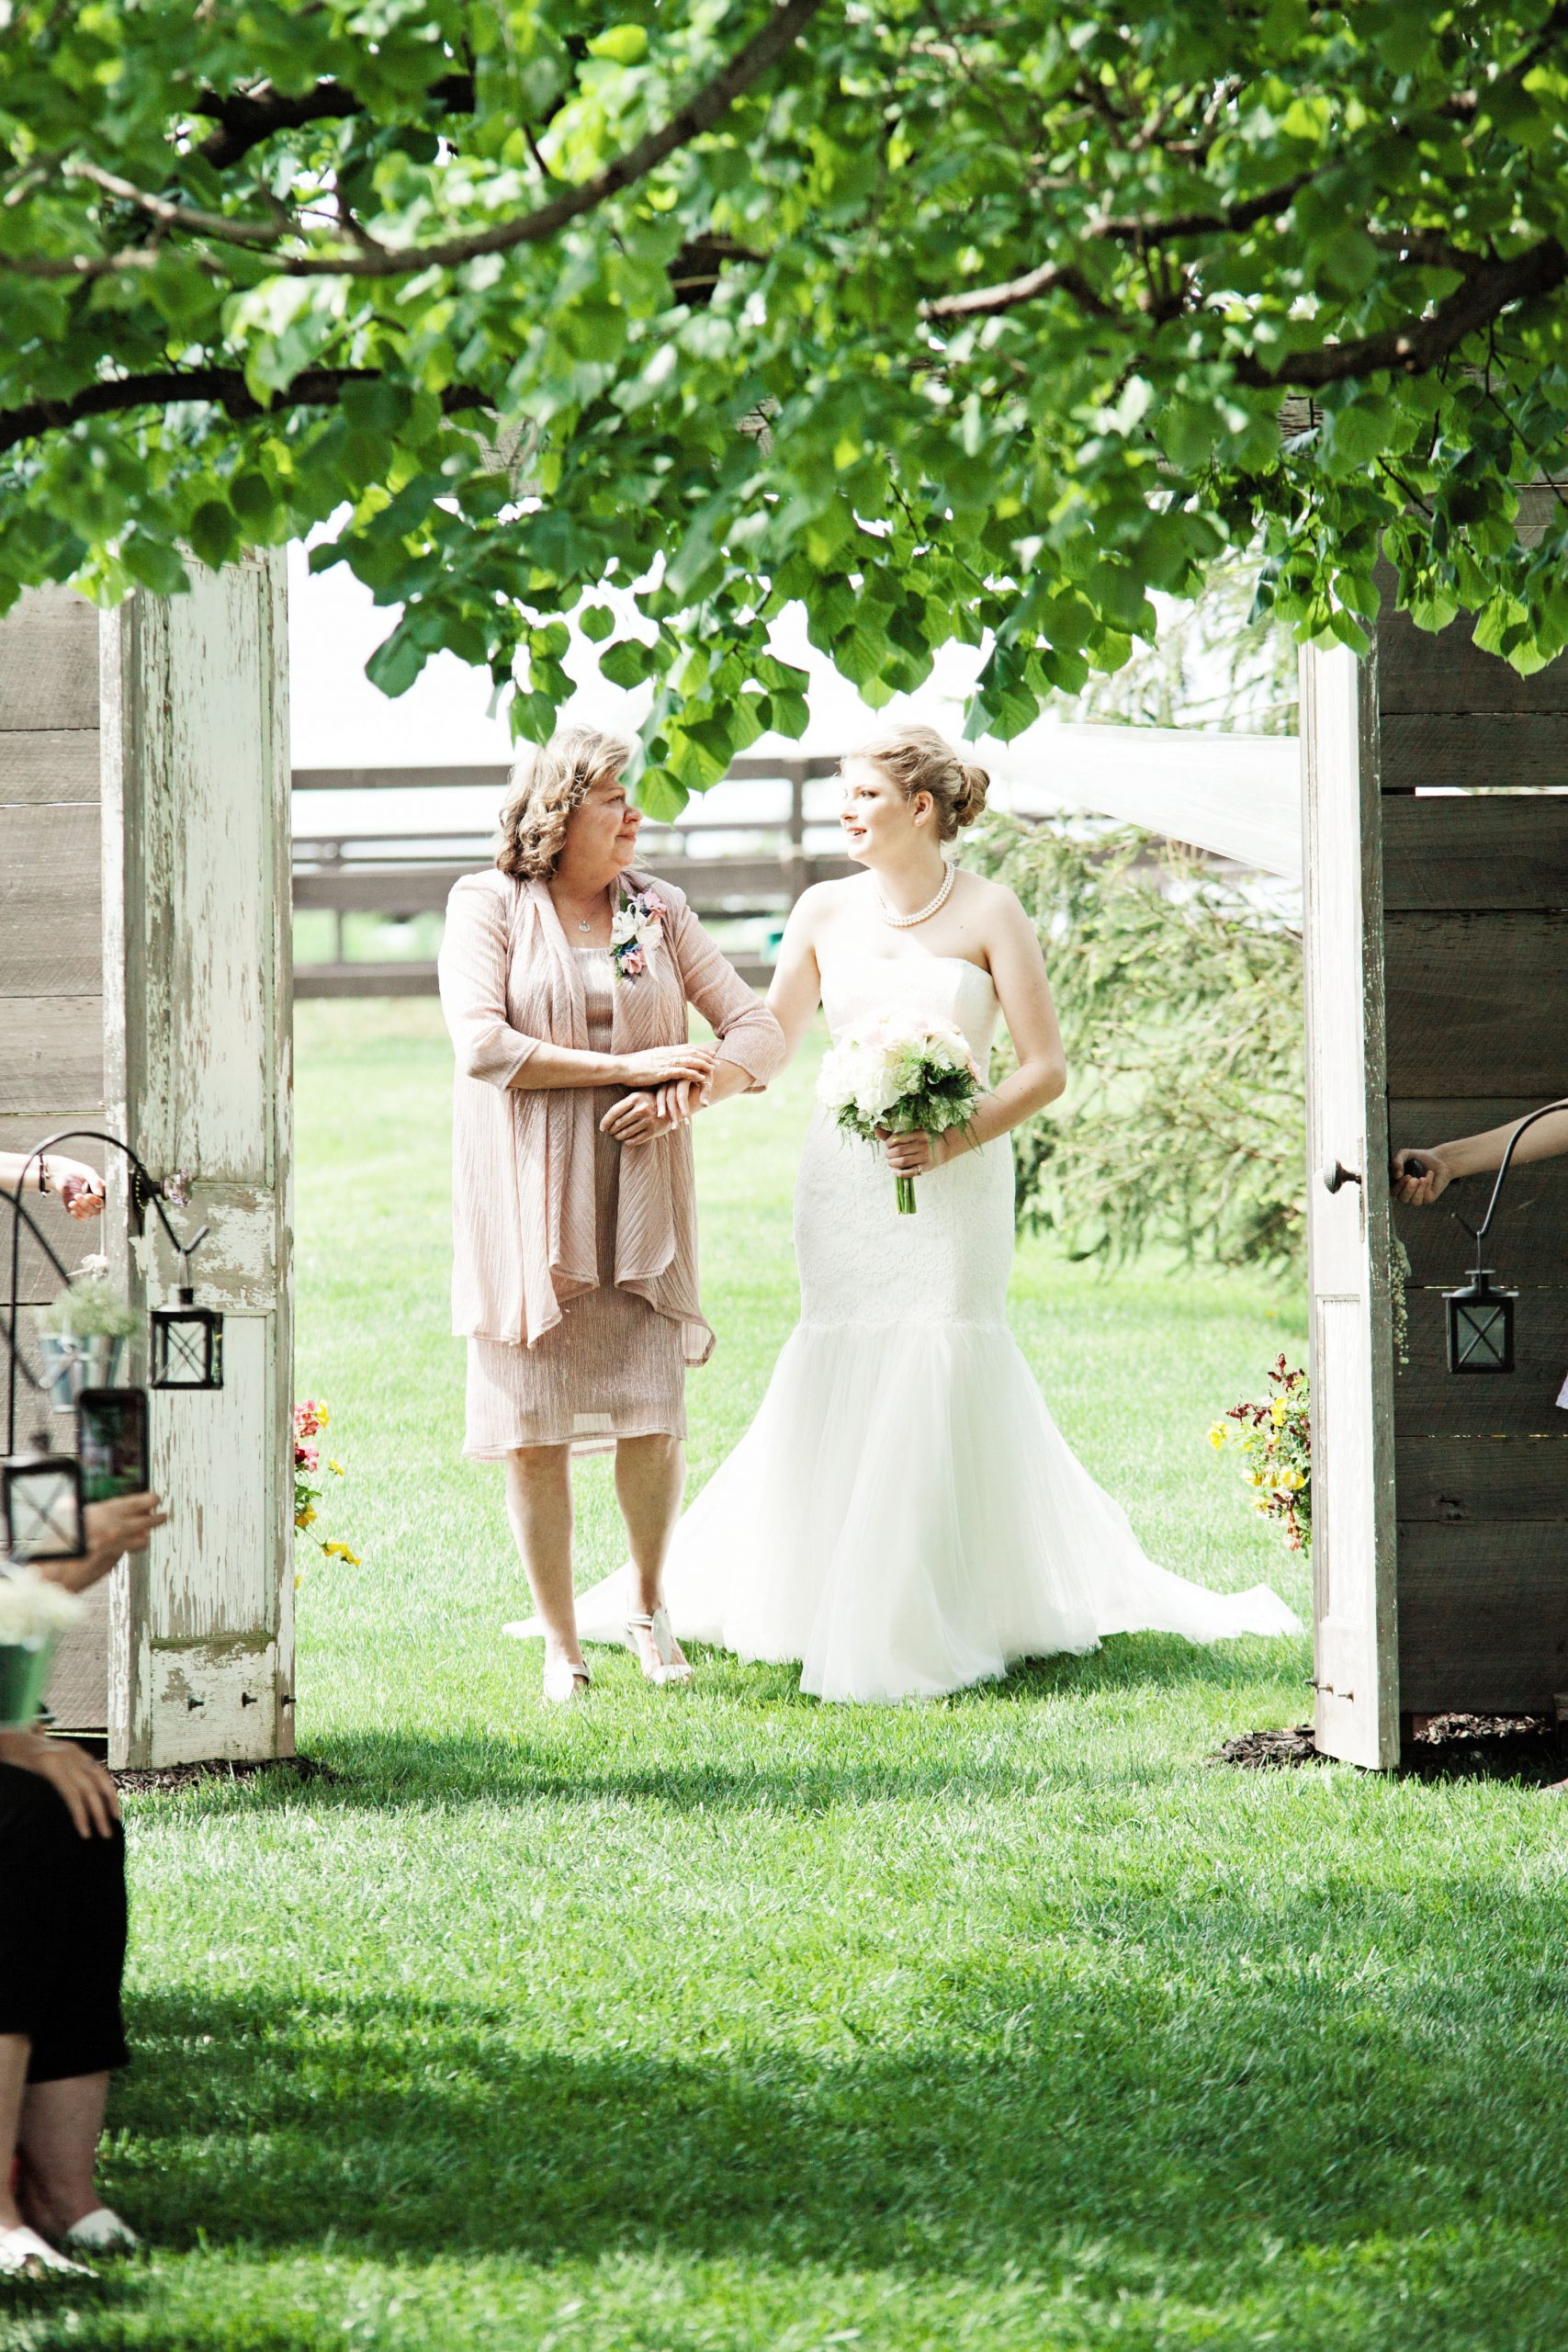 Mother of the bride emotionally holds the arm of her soon to be married daughter at Lakeview Farms of York, PA. Lovefusion Photography did a wonderful job of showcasing this moment. Featured in Dream Weddings.